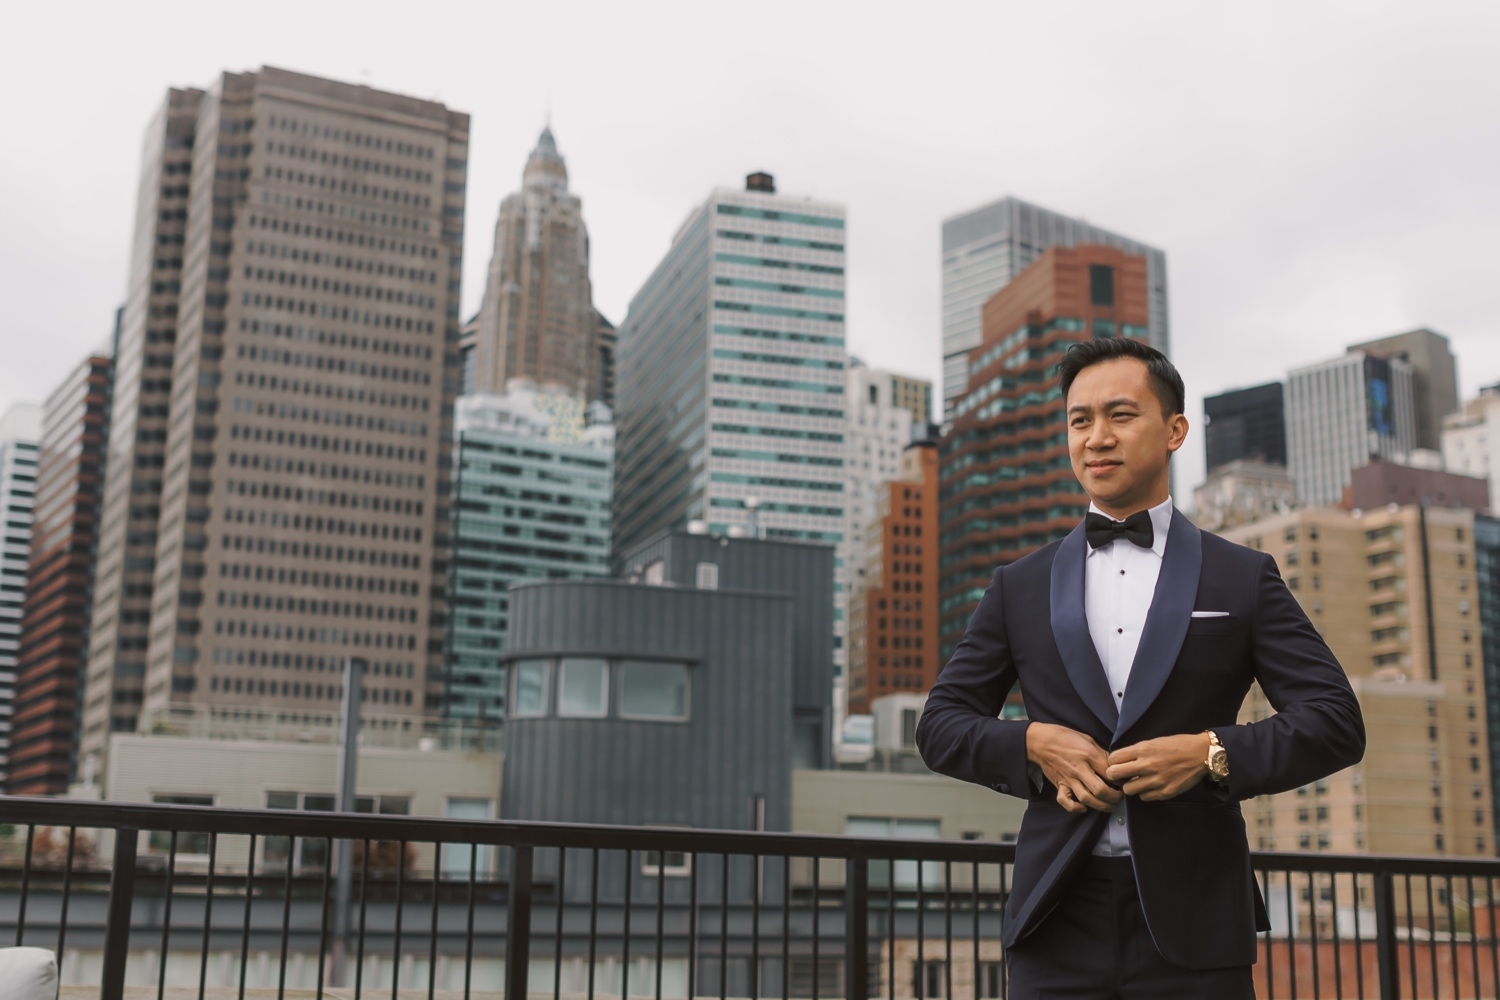 A groom wearing his wedding suit in a Mr. C Seaport Hotel on a wedding day at Cipriani Wall Street in New York City.